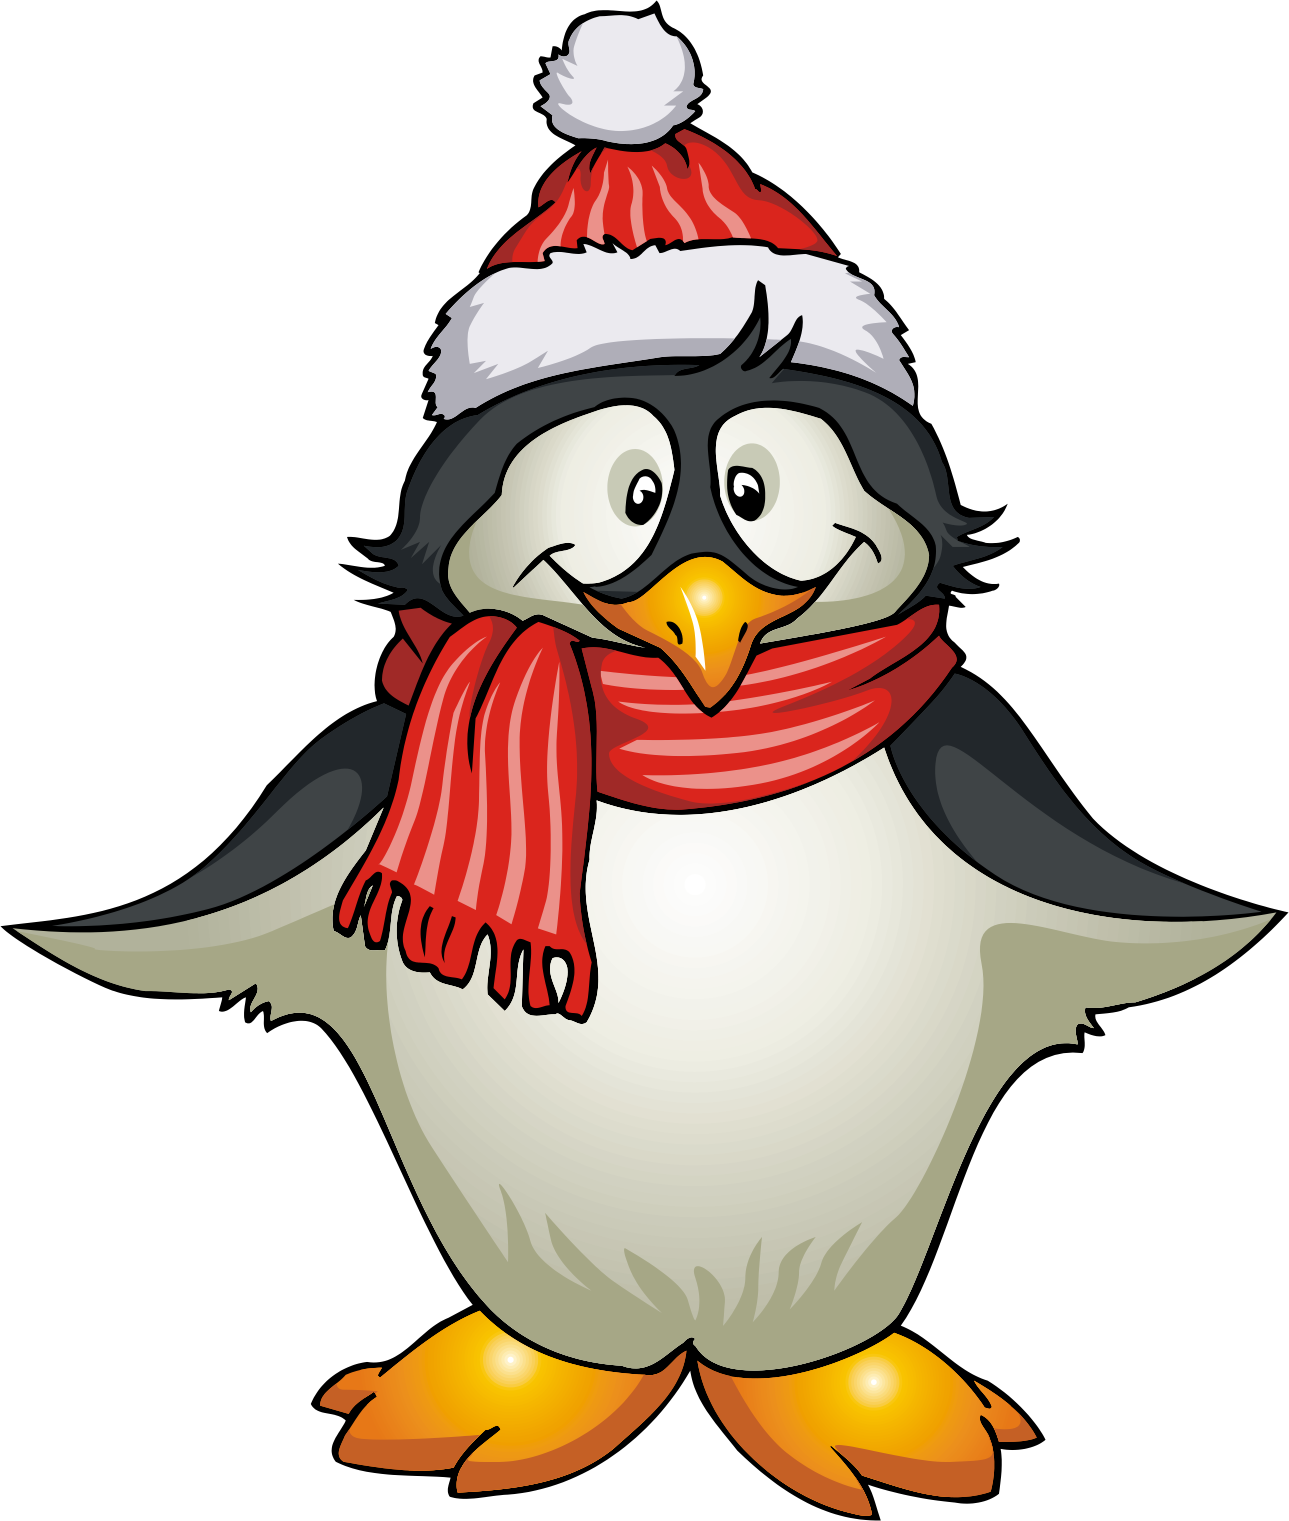 1289x1521 Xmas Clip Art For Teachers Clipart Panda